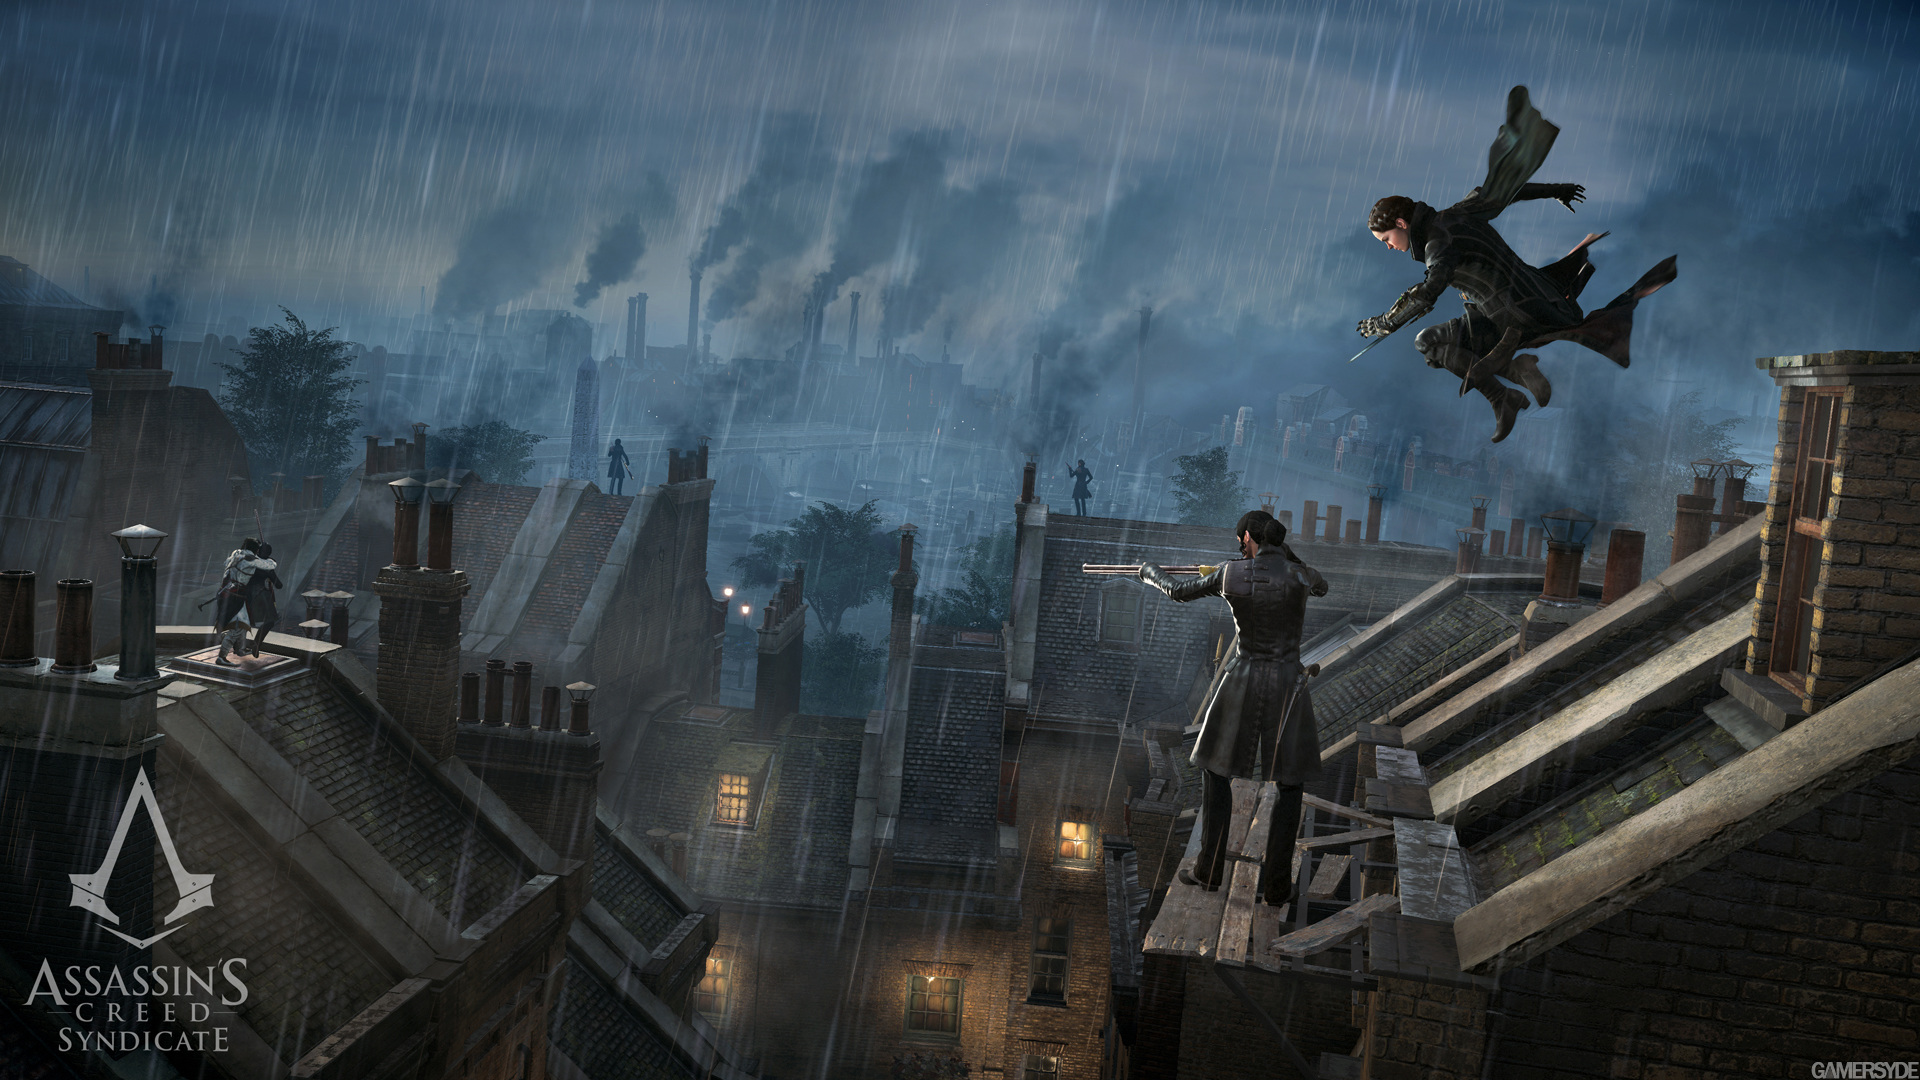 assassinand 39 s creed games characters. assassin\u0027s creed: syndicate - general discussion (console) [archive] page 7 ubisoft forums assassinand 39 s creed games characters